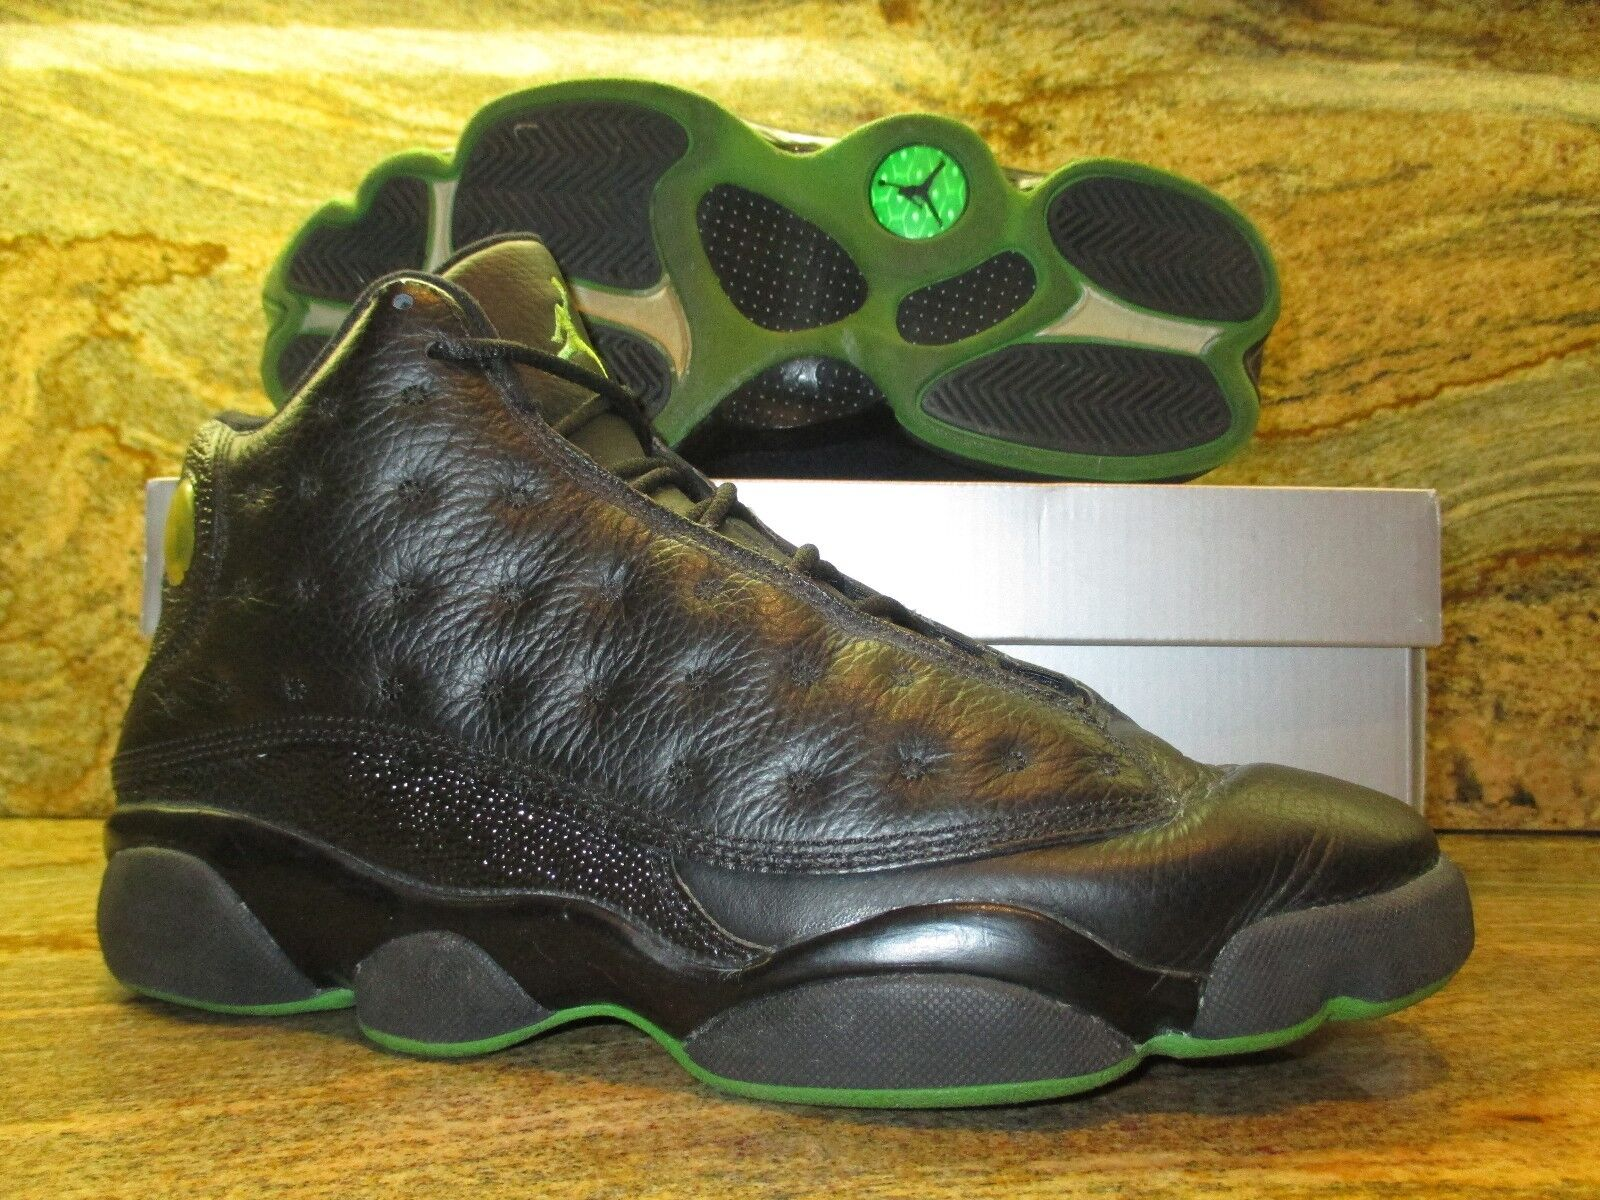 2005 Nike Air Jordan Retro 13 XIII Price reduction The latest discount shoes for men and women